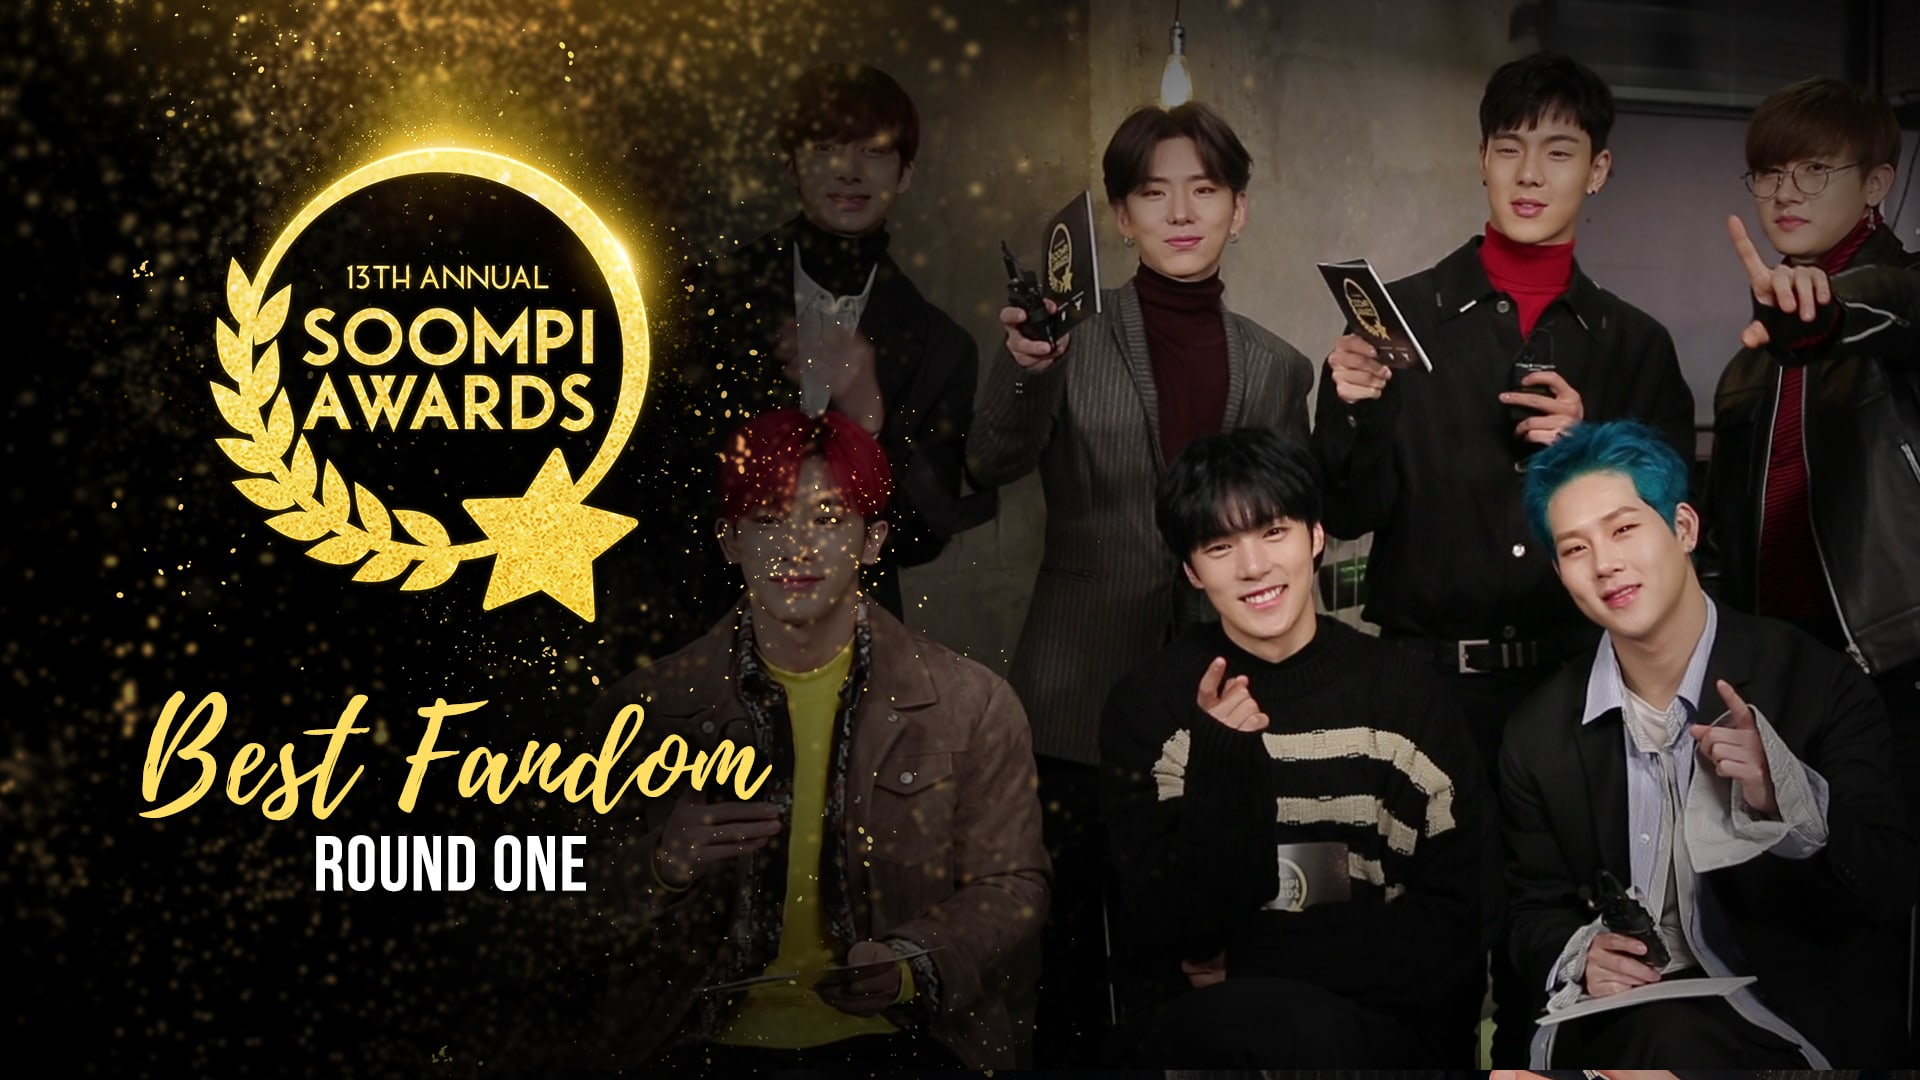 Fandoms, Unite! 24 Hours Only – Vote R1 In Twitter Best Fandom For Soompi Awards!